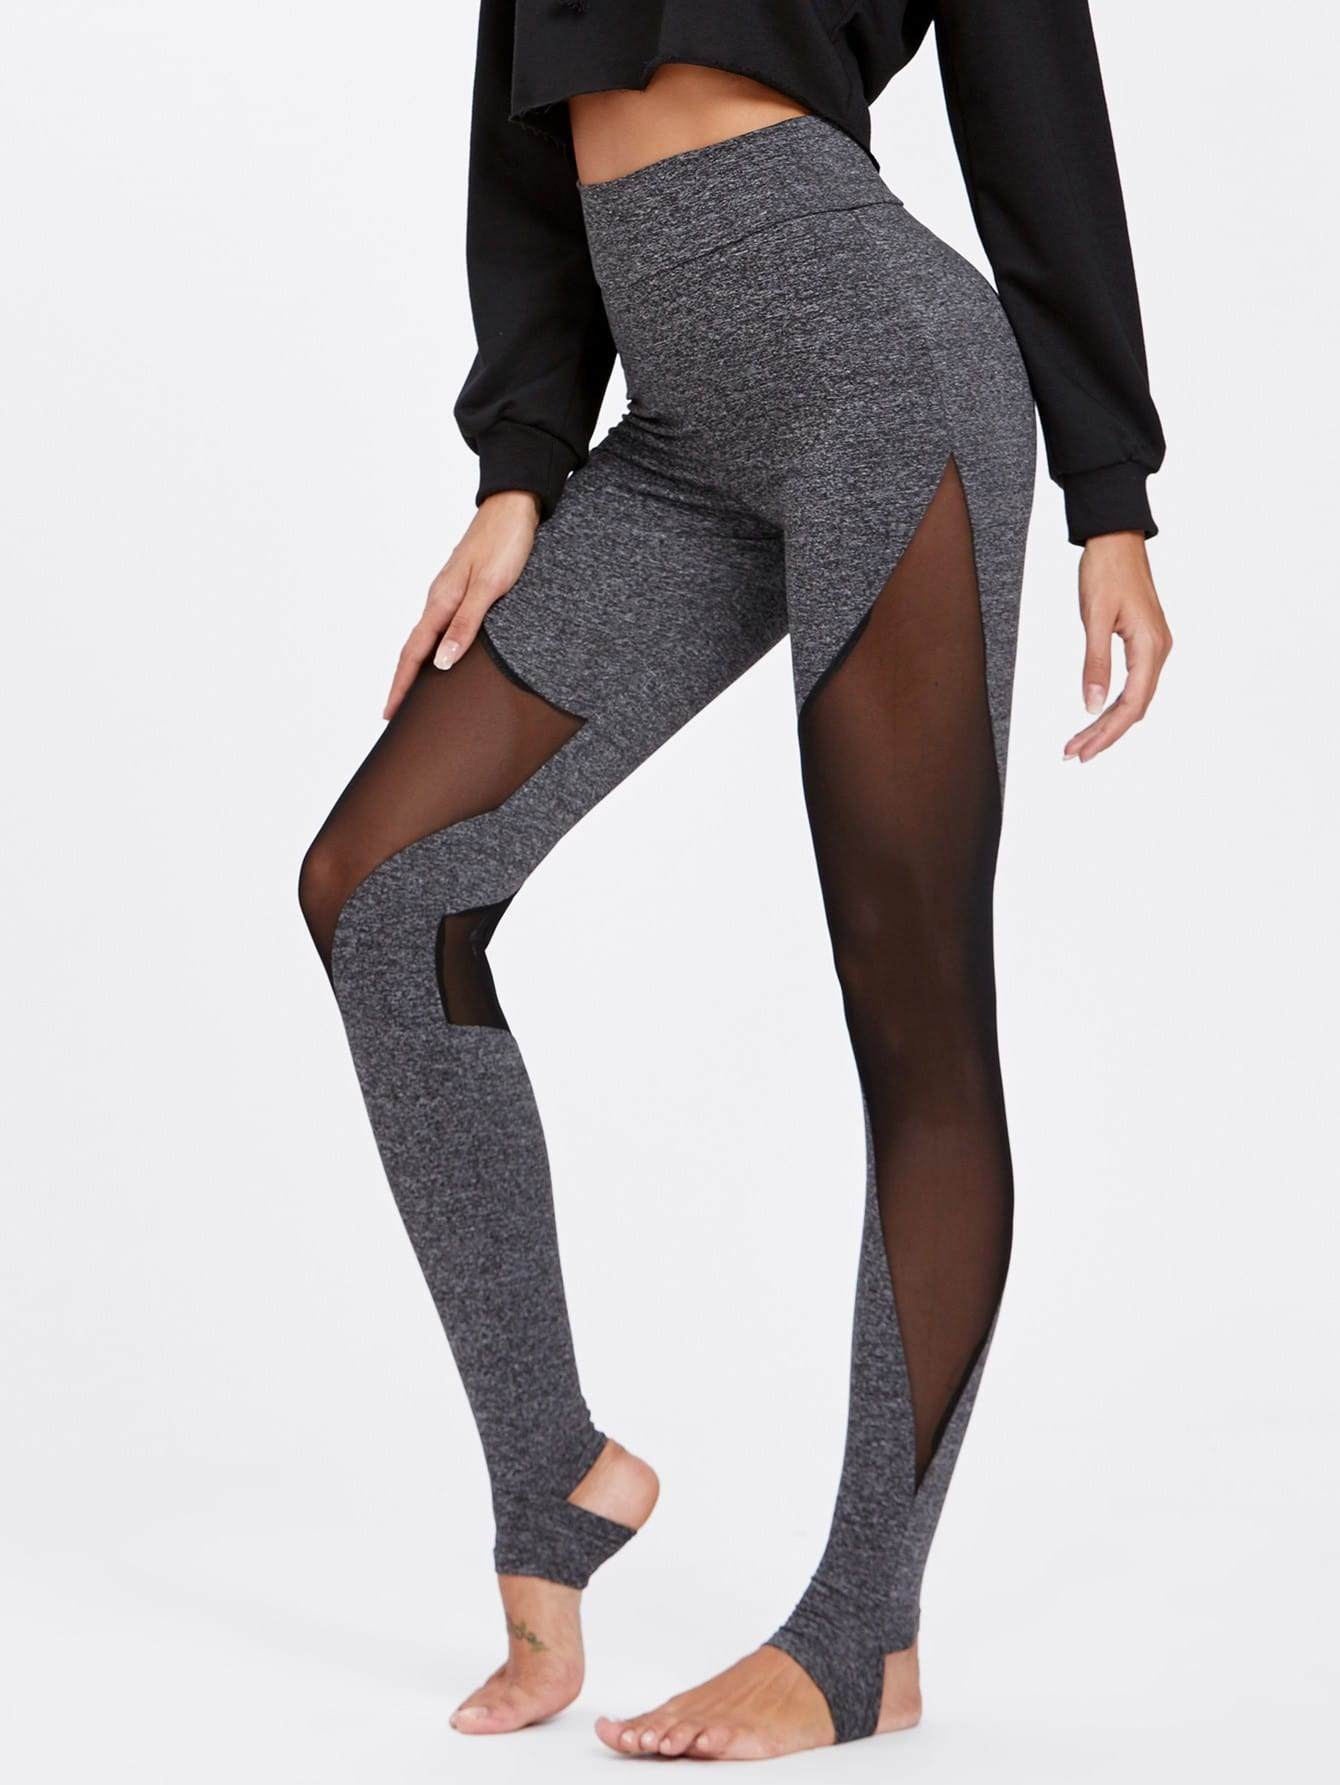 Mesh Insert Heathered Knit Stirrup Leggings peacock printed yoga stirrup leggings page 3